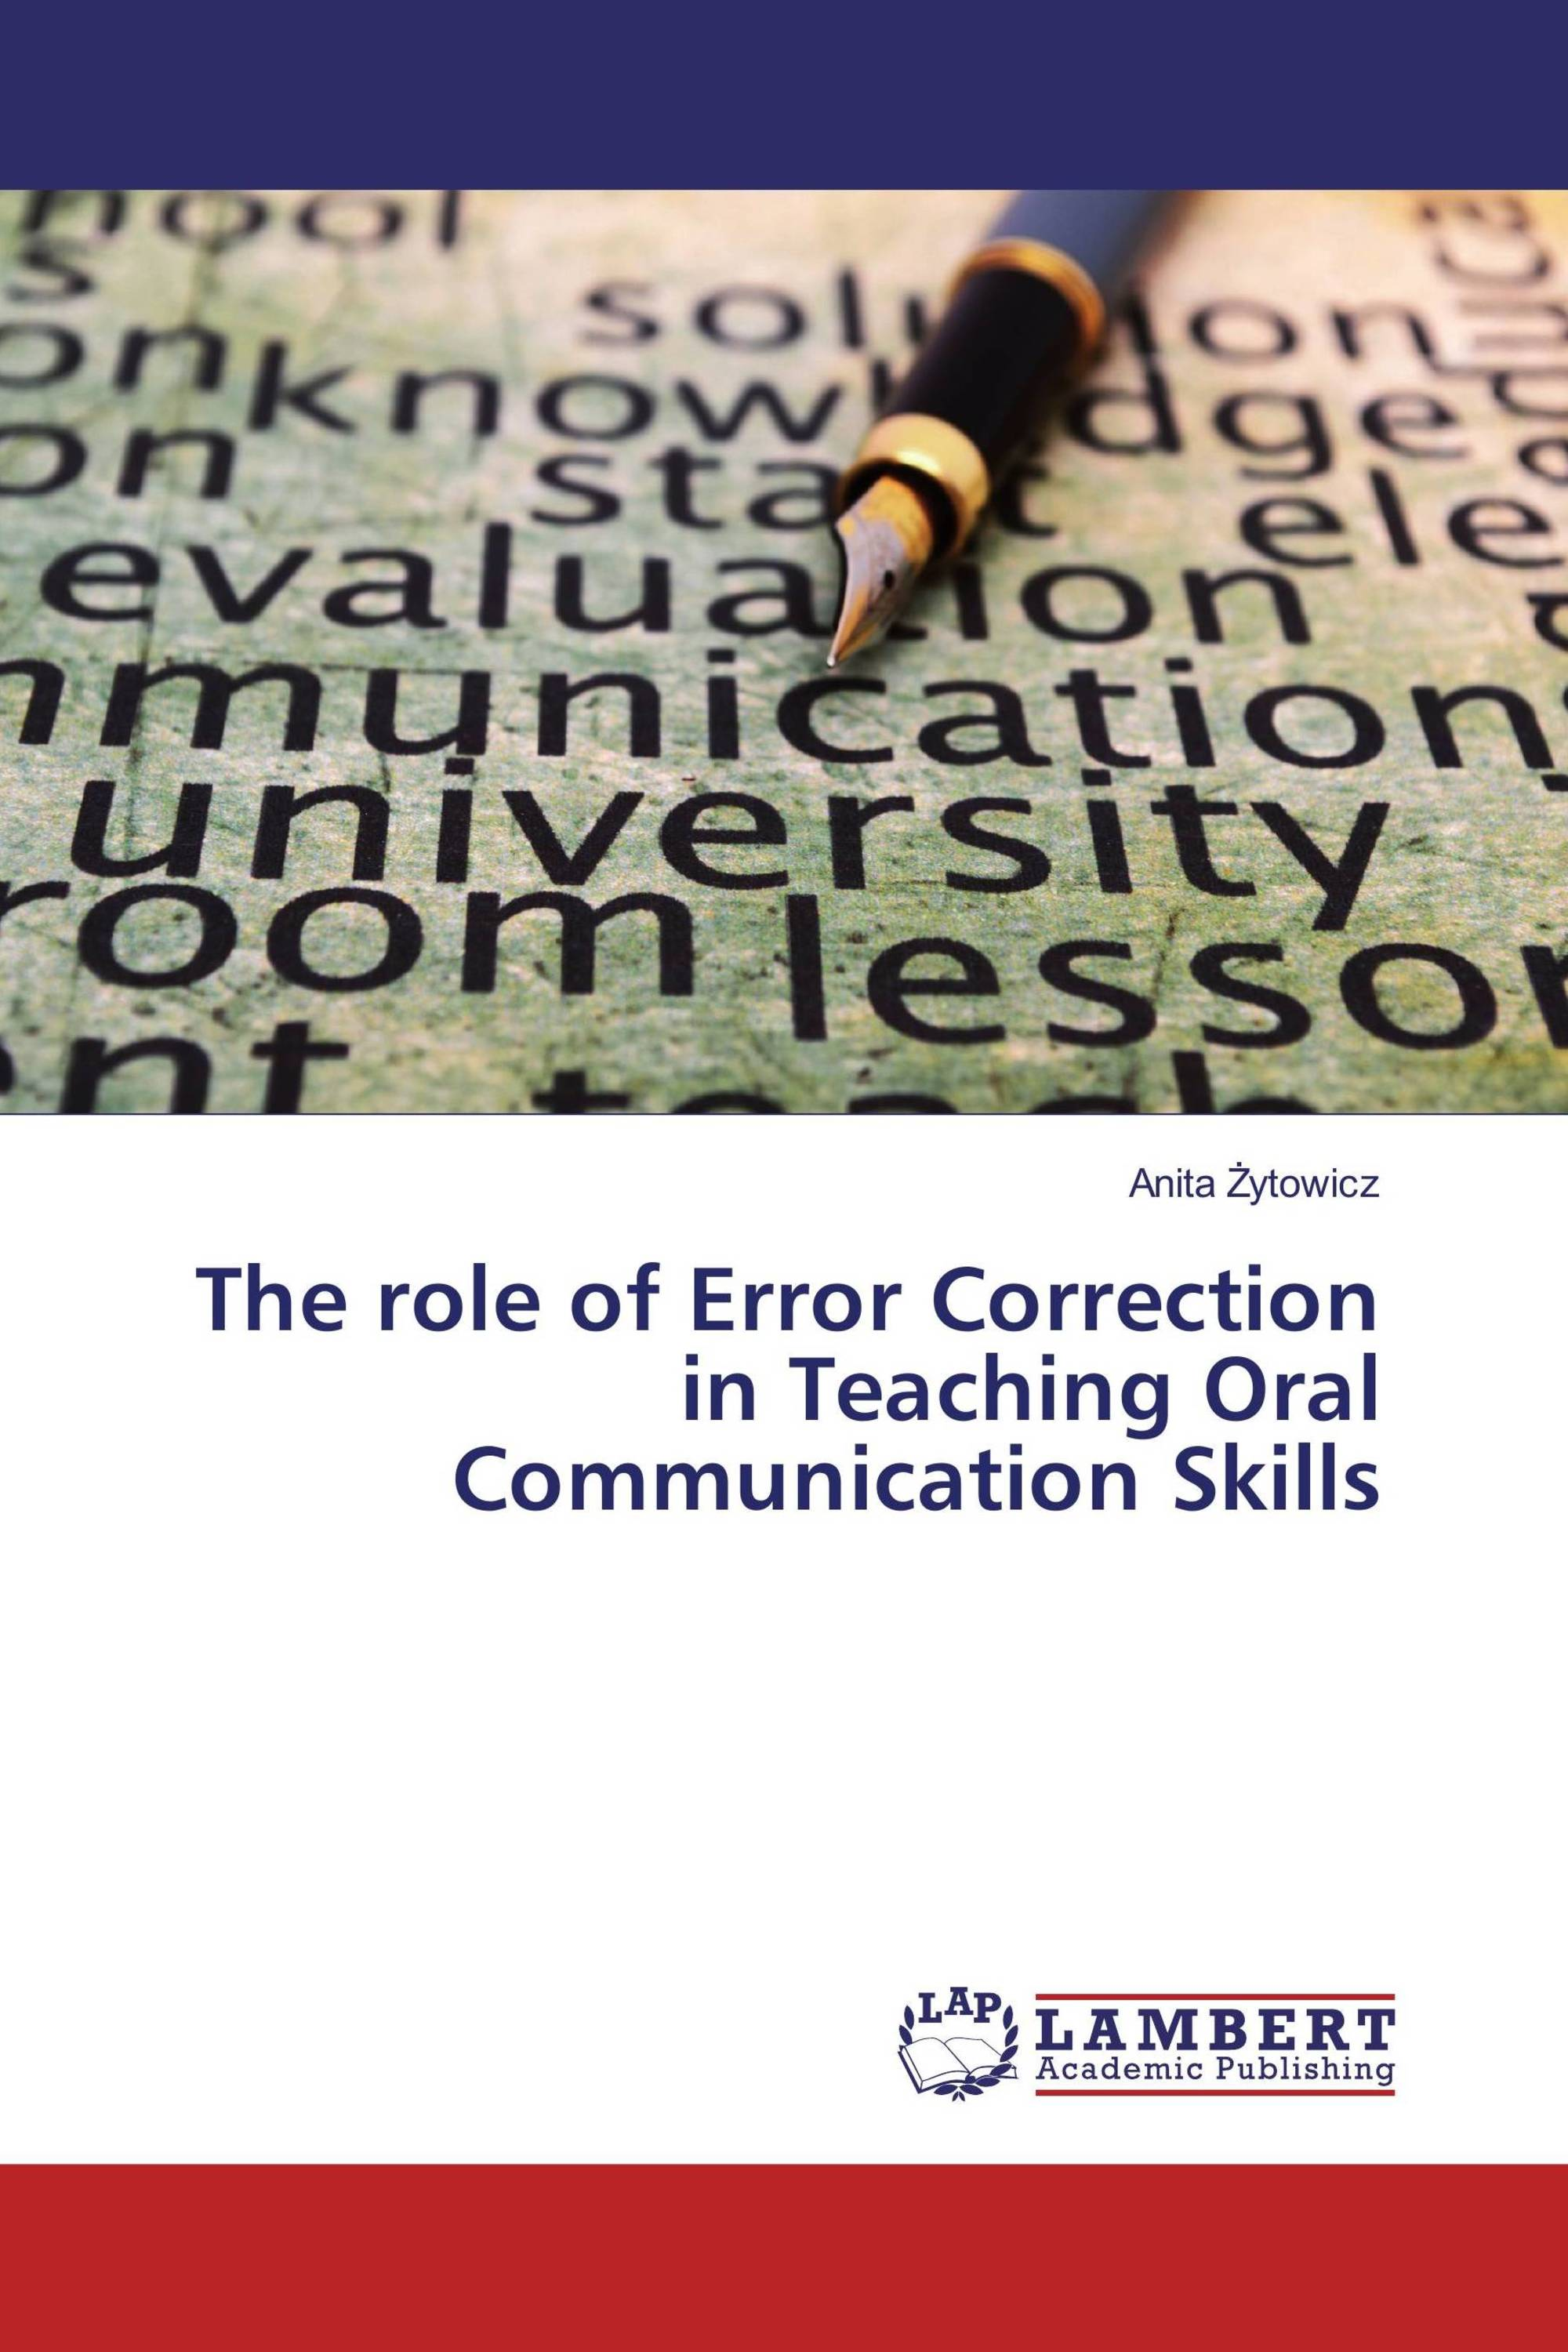 thesis about oral communication skills